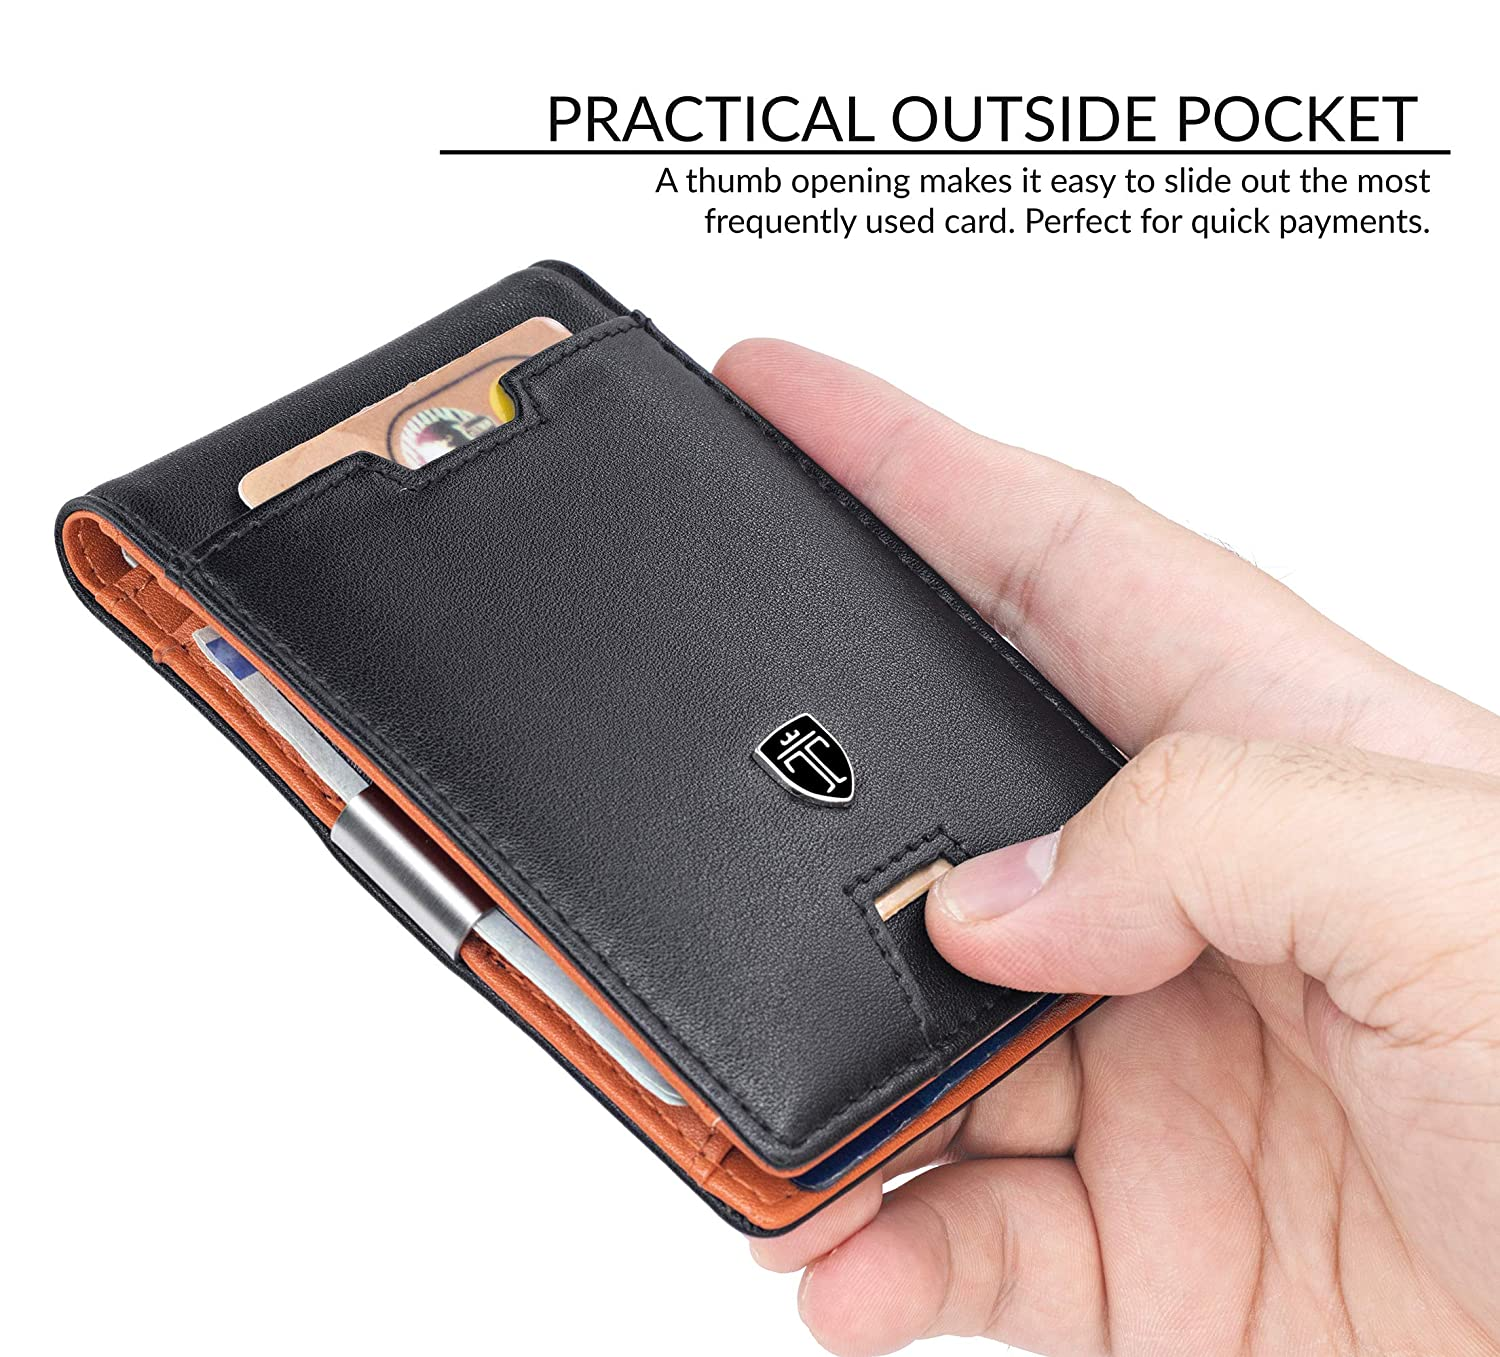 TRAVANDO Mens Wallet Money Clip PHOENIX Front Pocket Wallet Slim Wallet RFID Bifold Credit Card Holder Gifts for Men